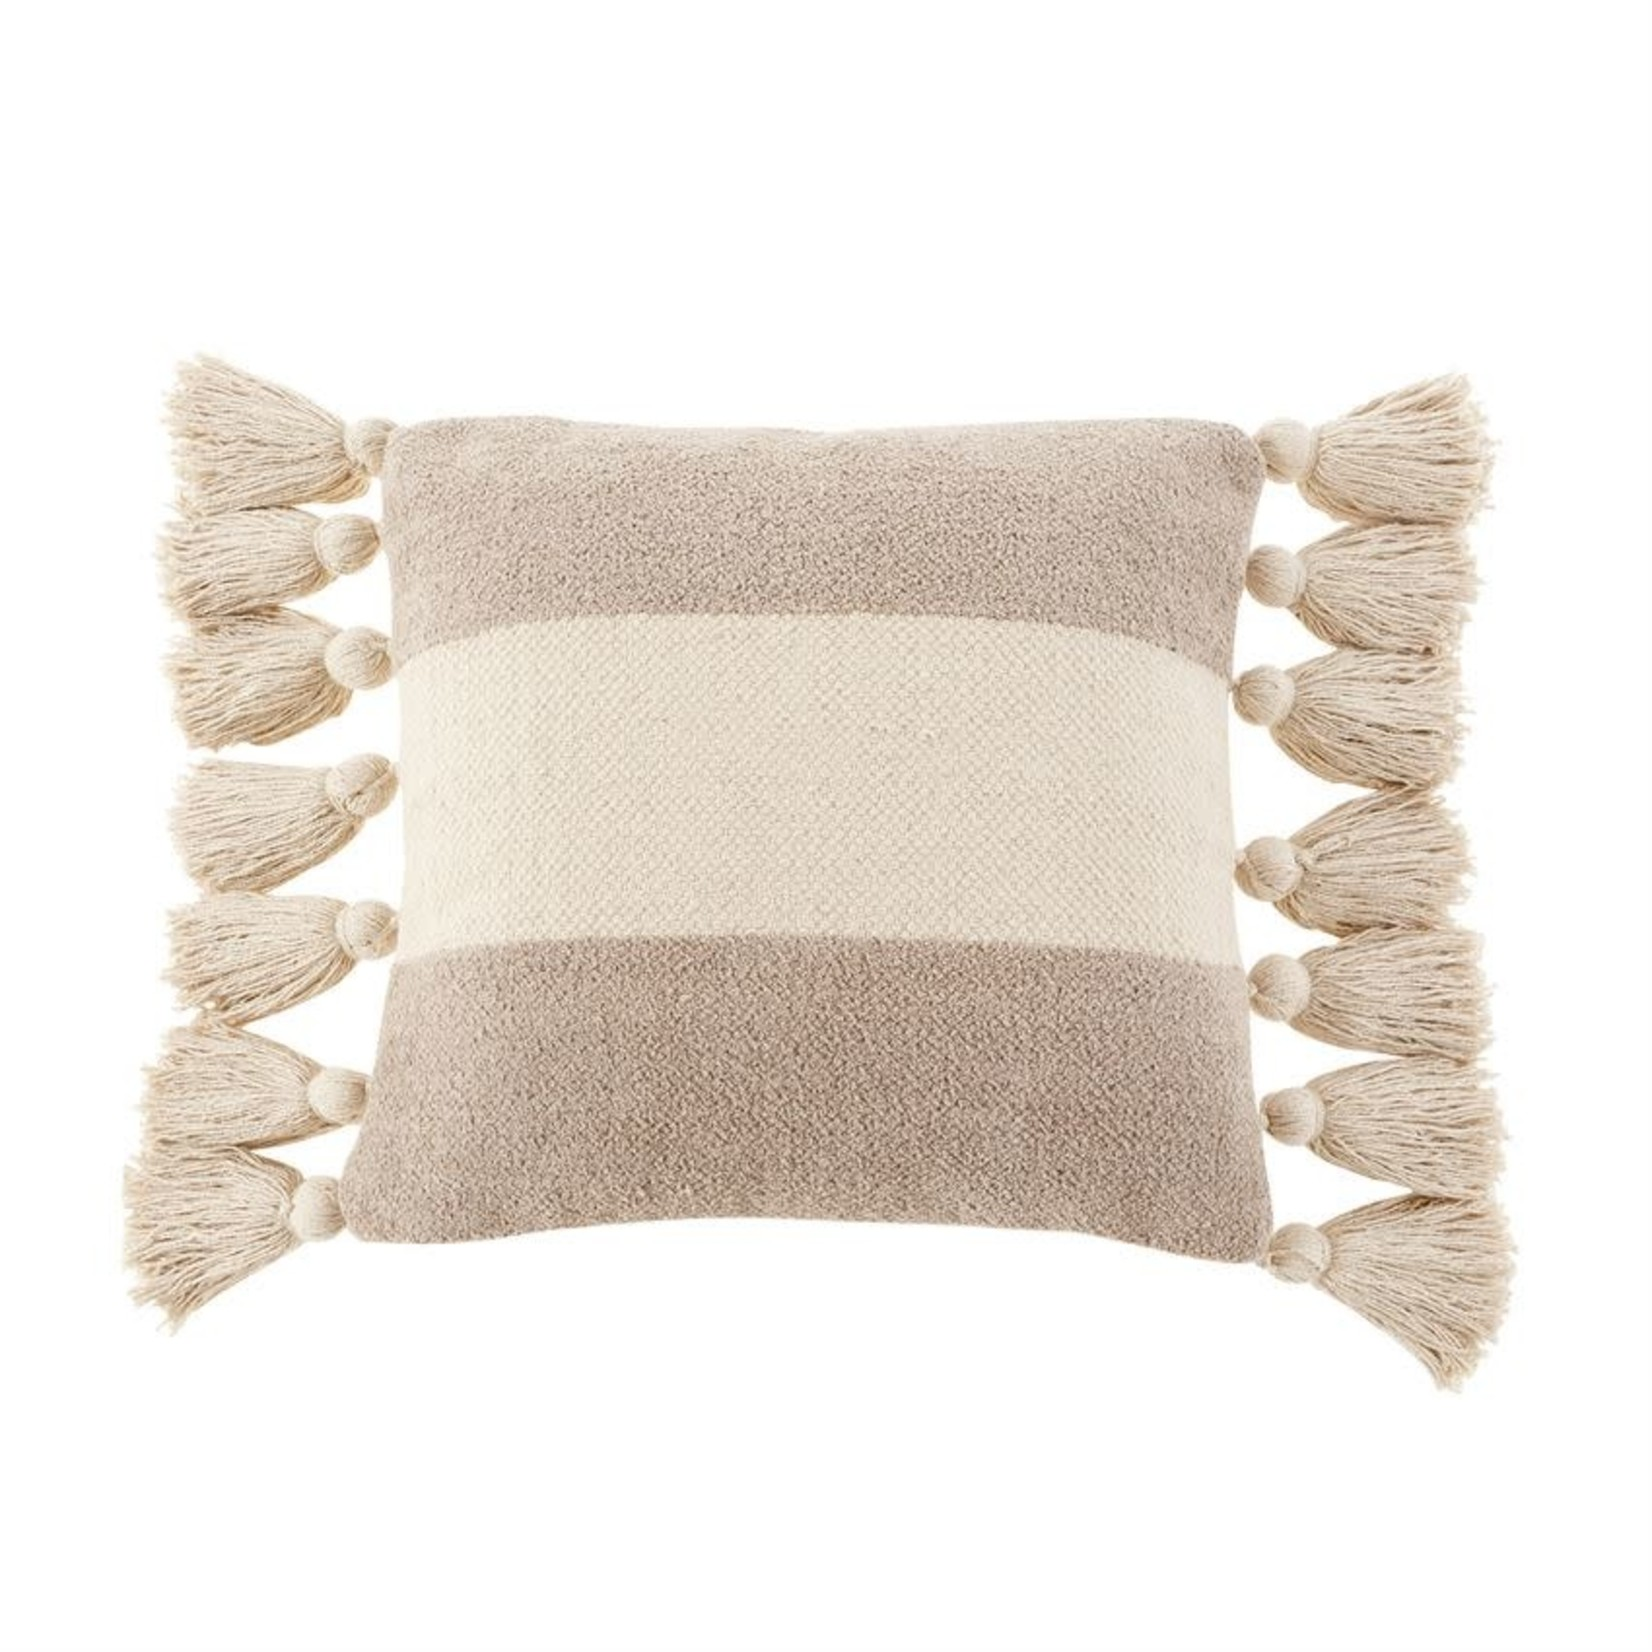 Square Striped Pillows